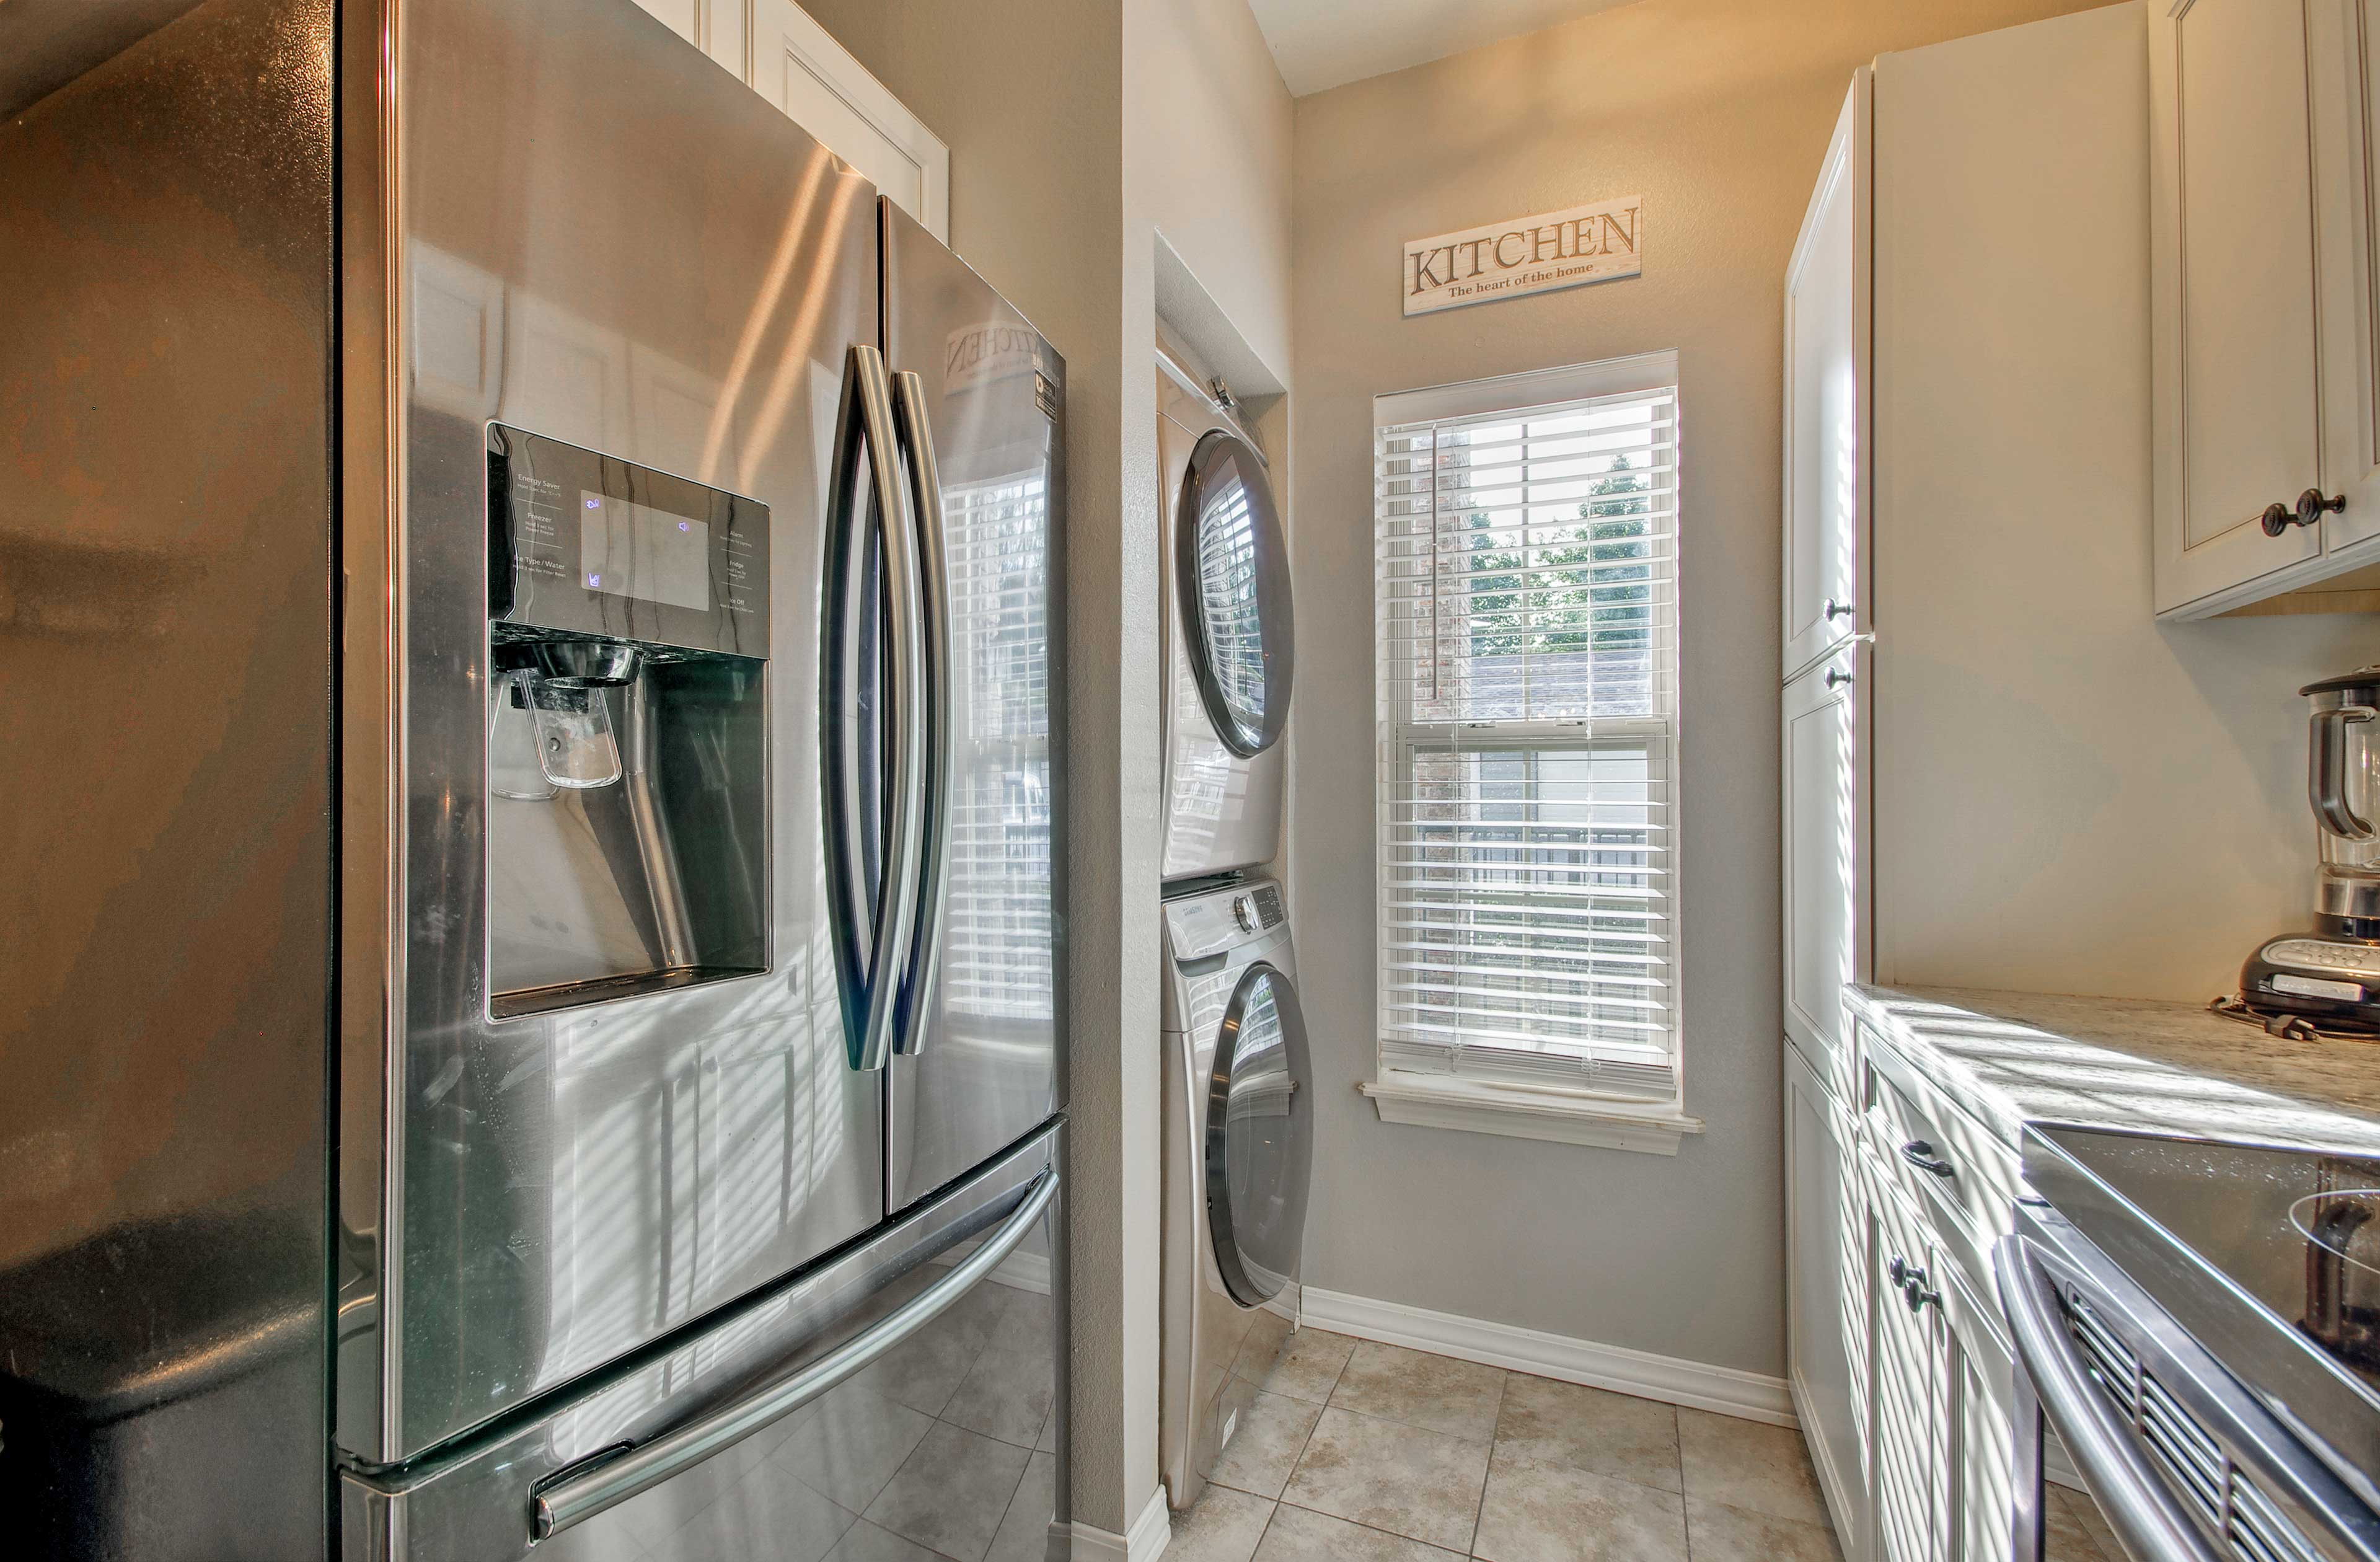 The in-unit washer and dryer add a convenient touch.